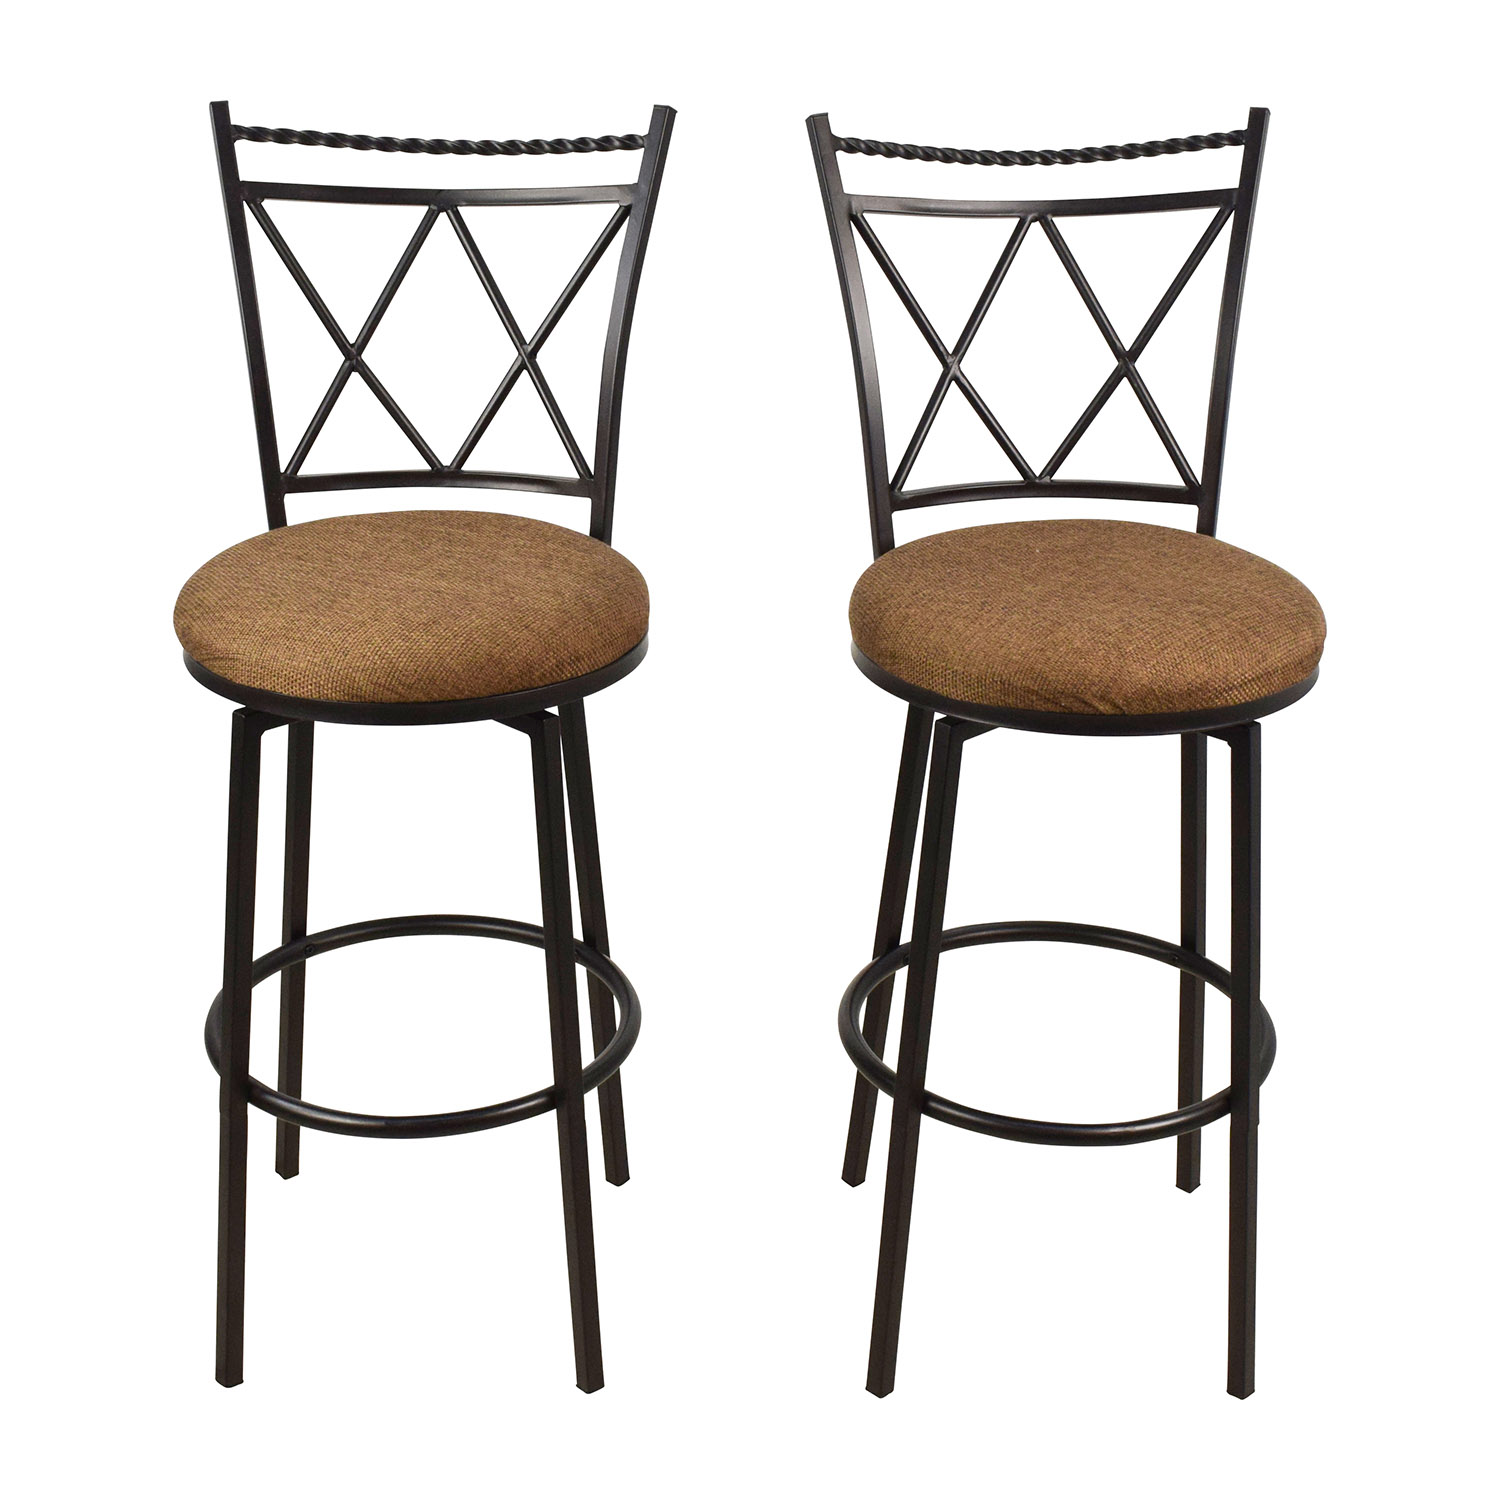 Upholstered Swivel Bar Stools nj